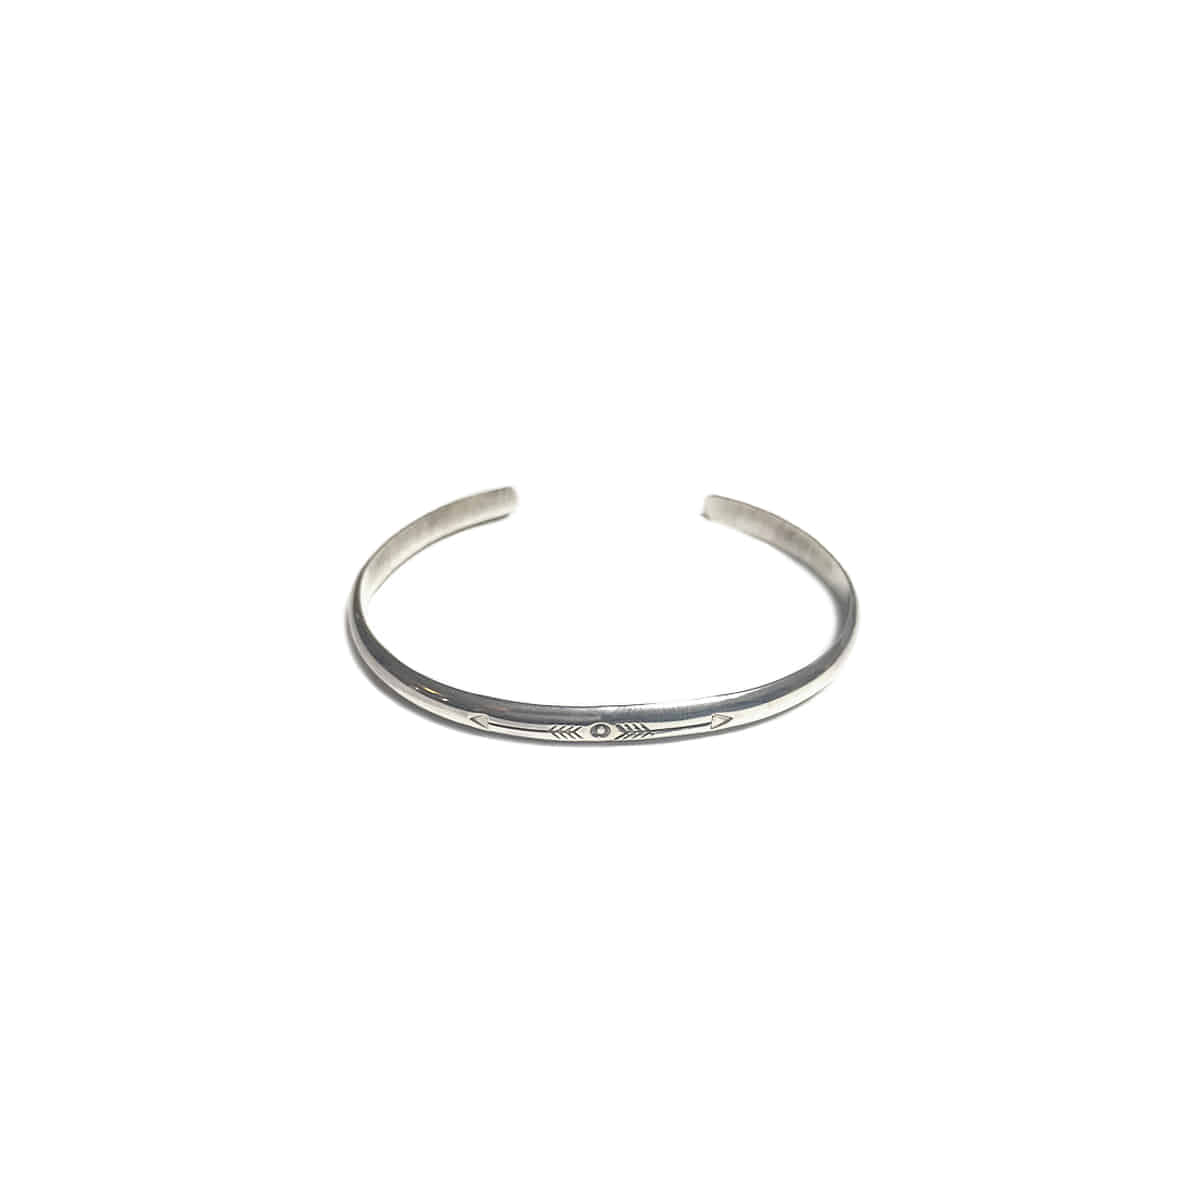 [NORTH WORKS] 900 SILVER ROUND CUFF BANGLE 'W-221'